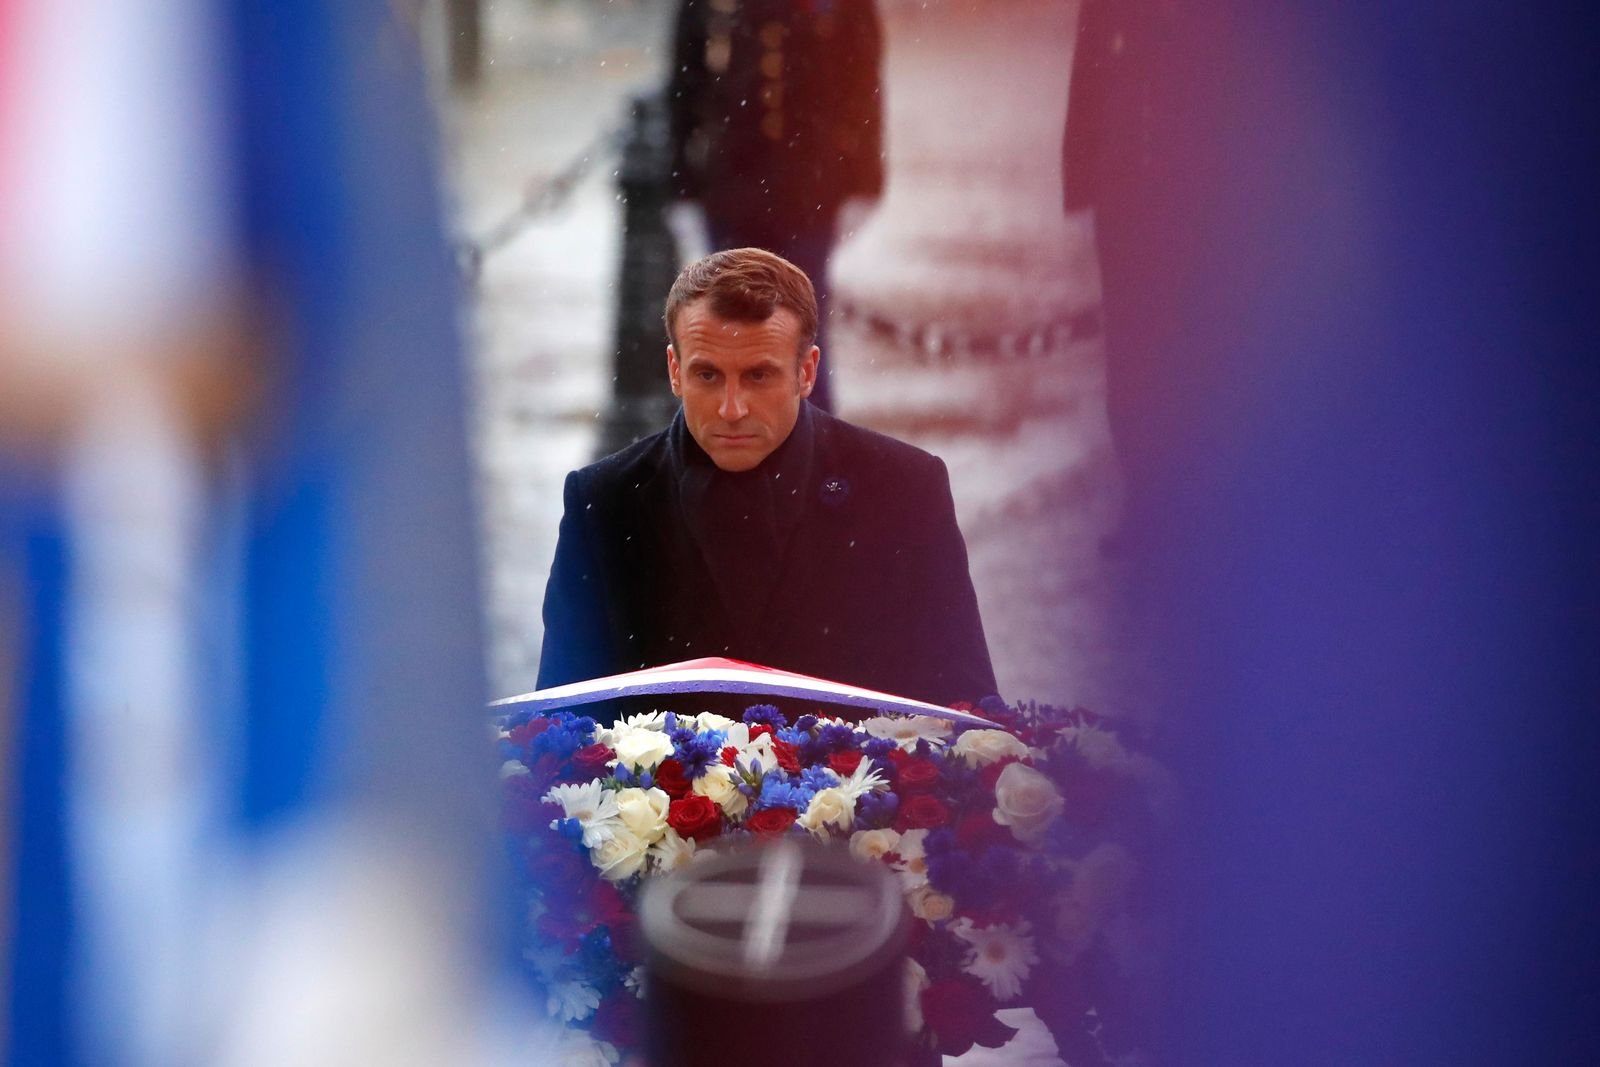 French President Emmanuel Macron lays a wreath of flowers at the tomb of the Unknown Soldier under the Arc de Triomphe in Paris Monday Nov. 11, 2019 during commemorations marking the 101st anniversary of the 1918 armistice, ending World War I. (AP Photo/Francois Mori, Pool)